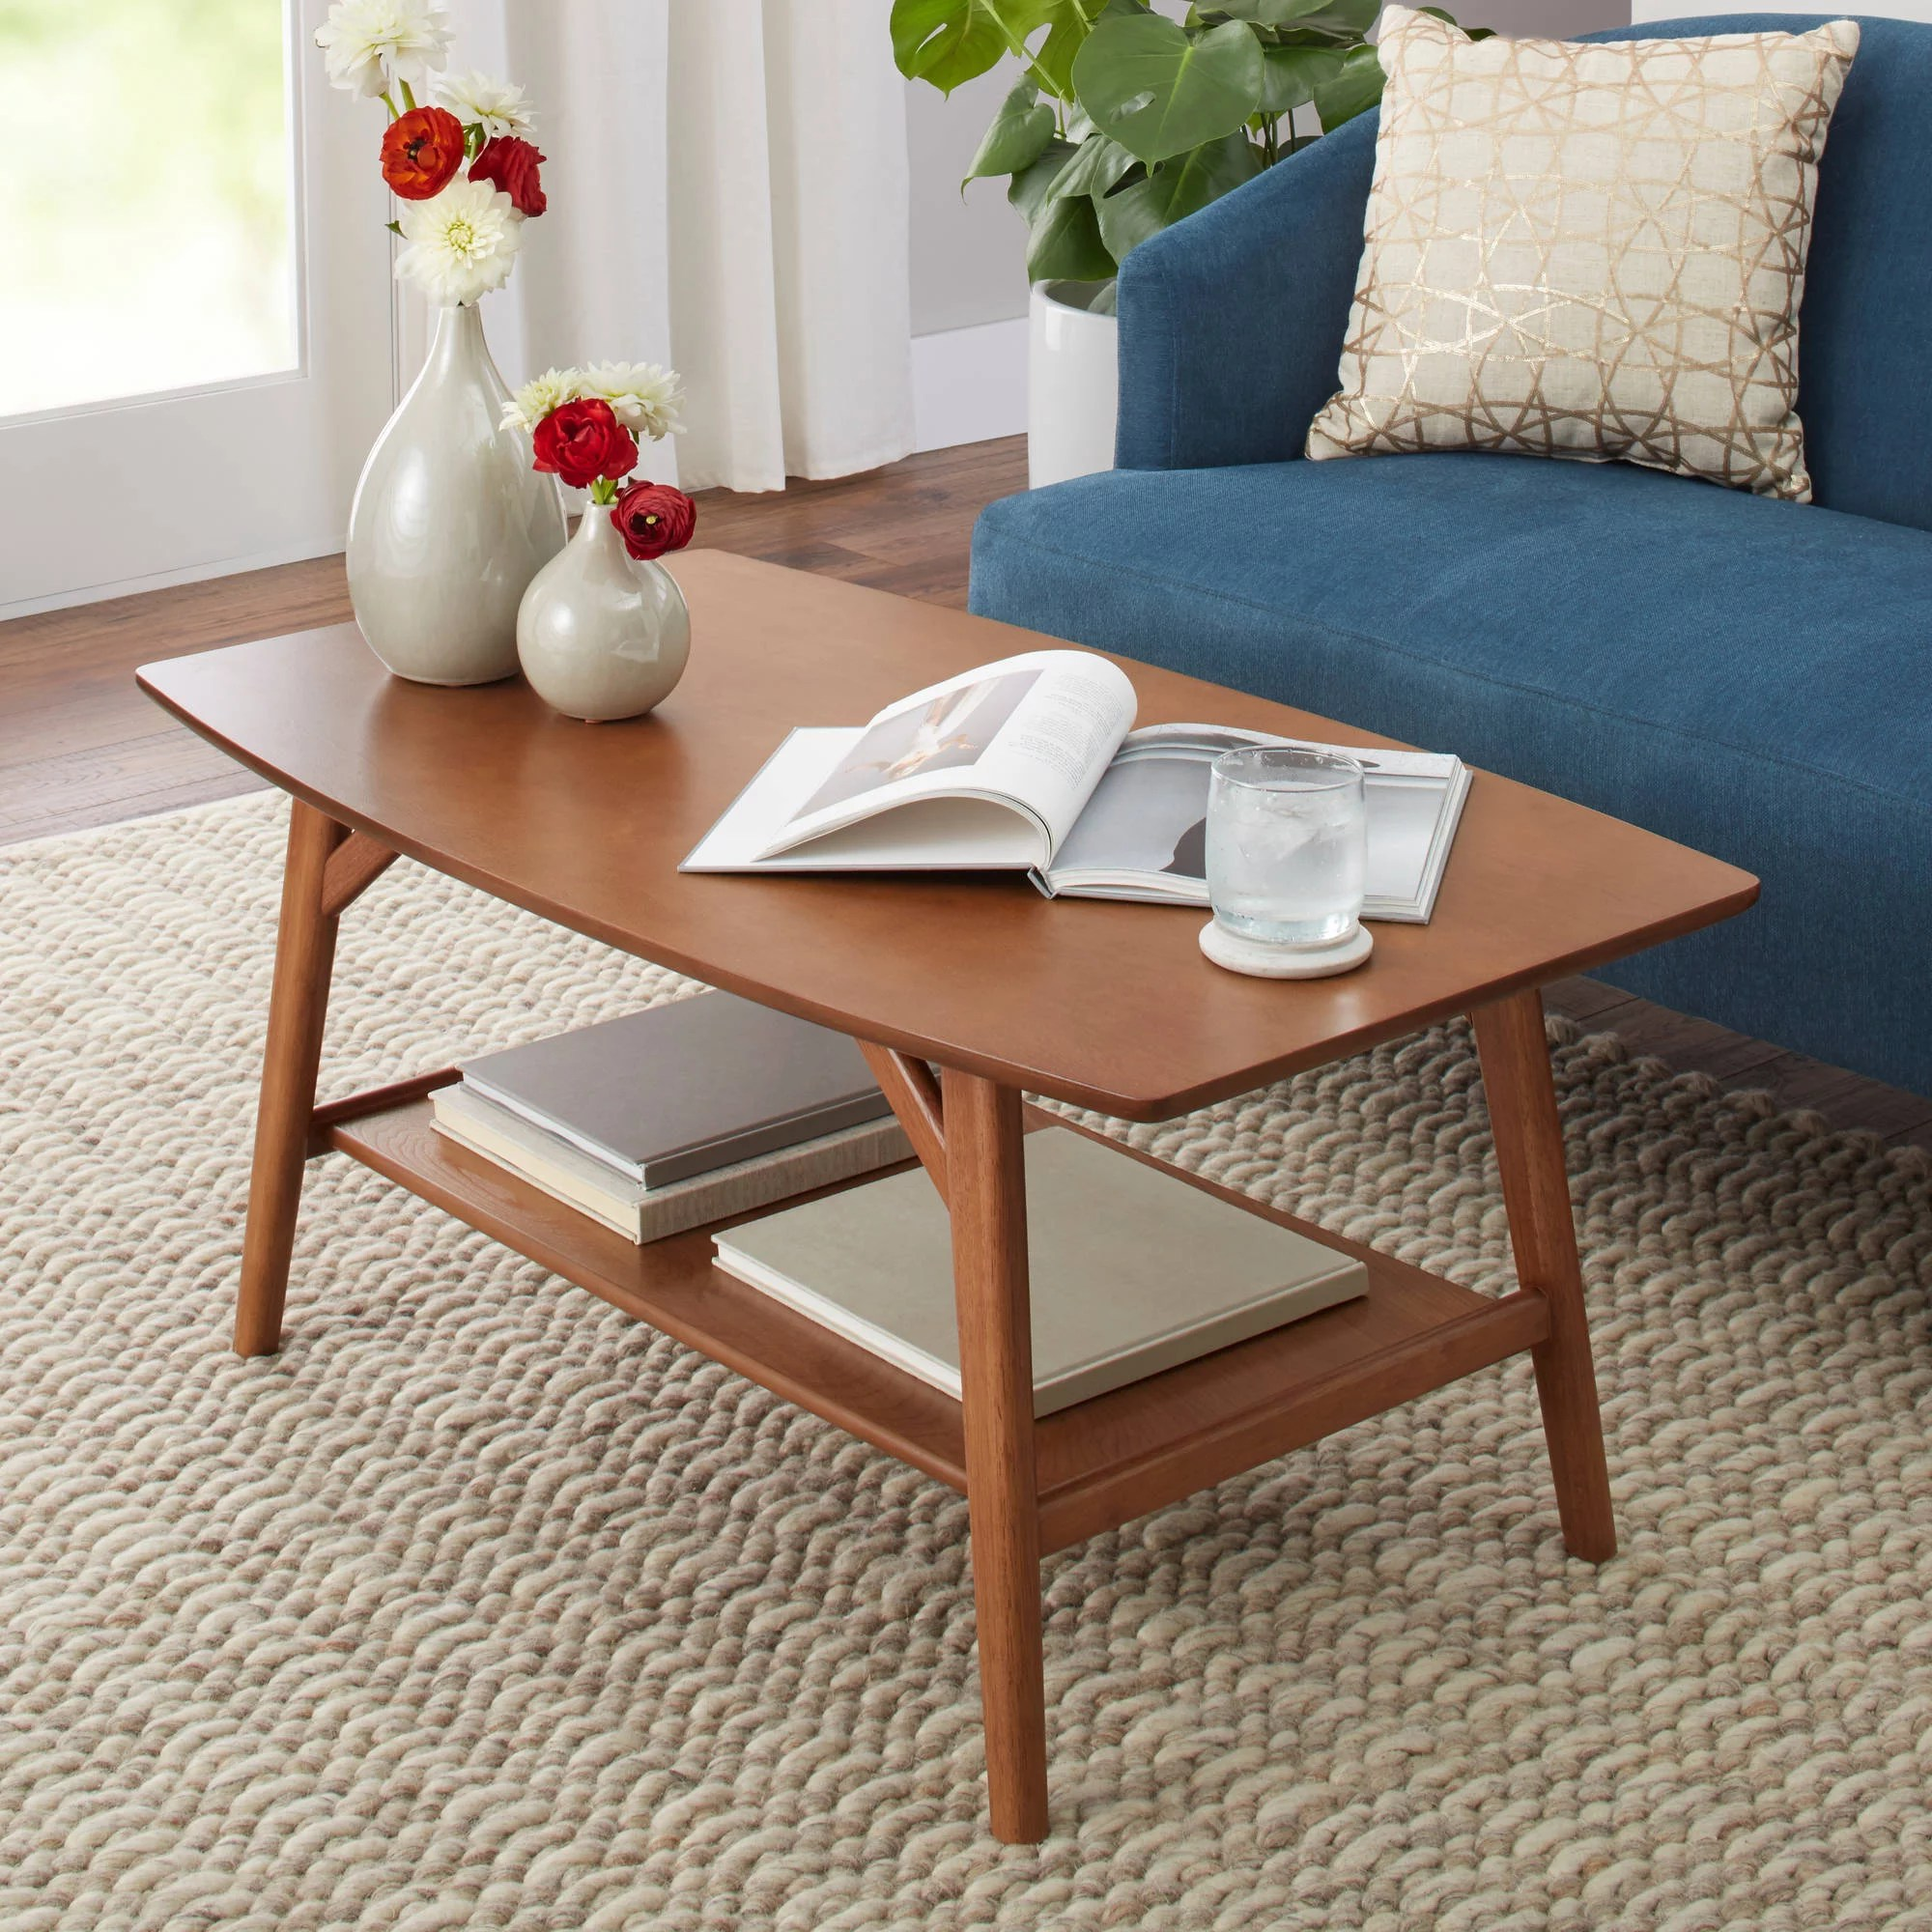 Mid Century Better Homes Gardens Reed Mid Century Modern Coffee Table Pecan